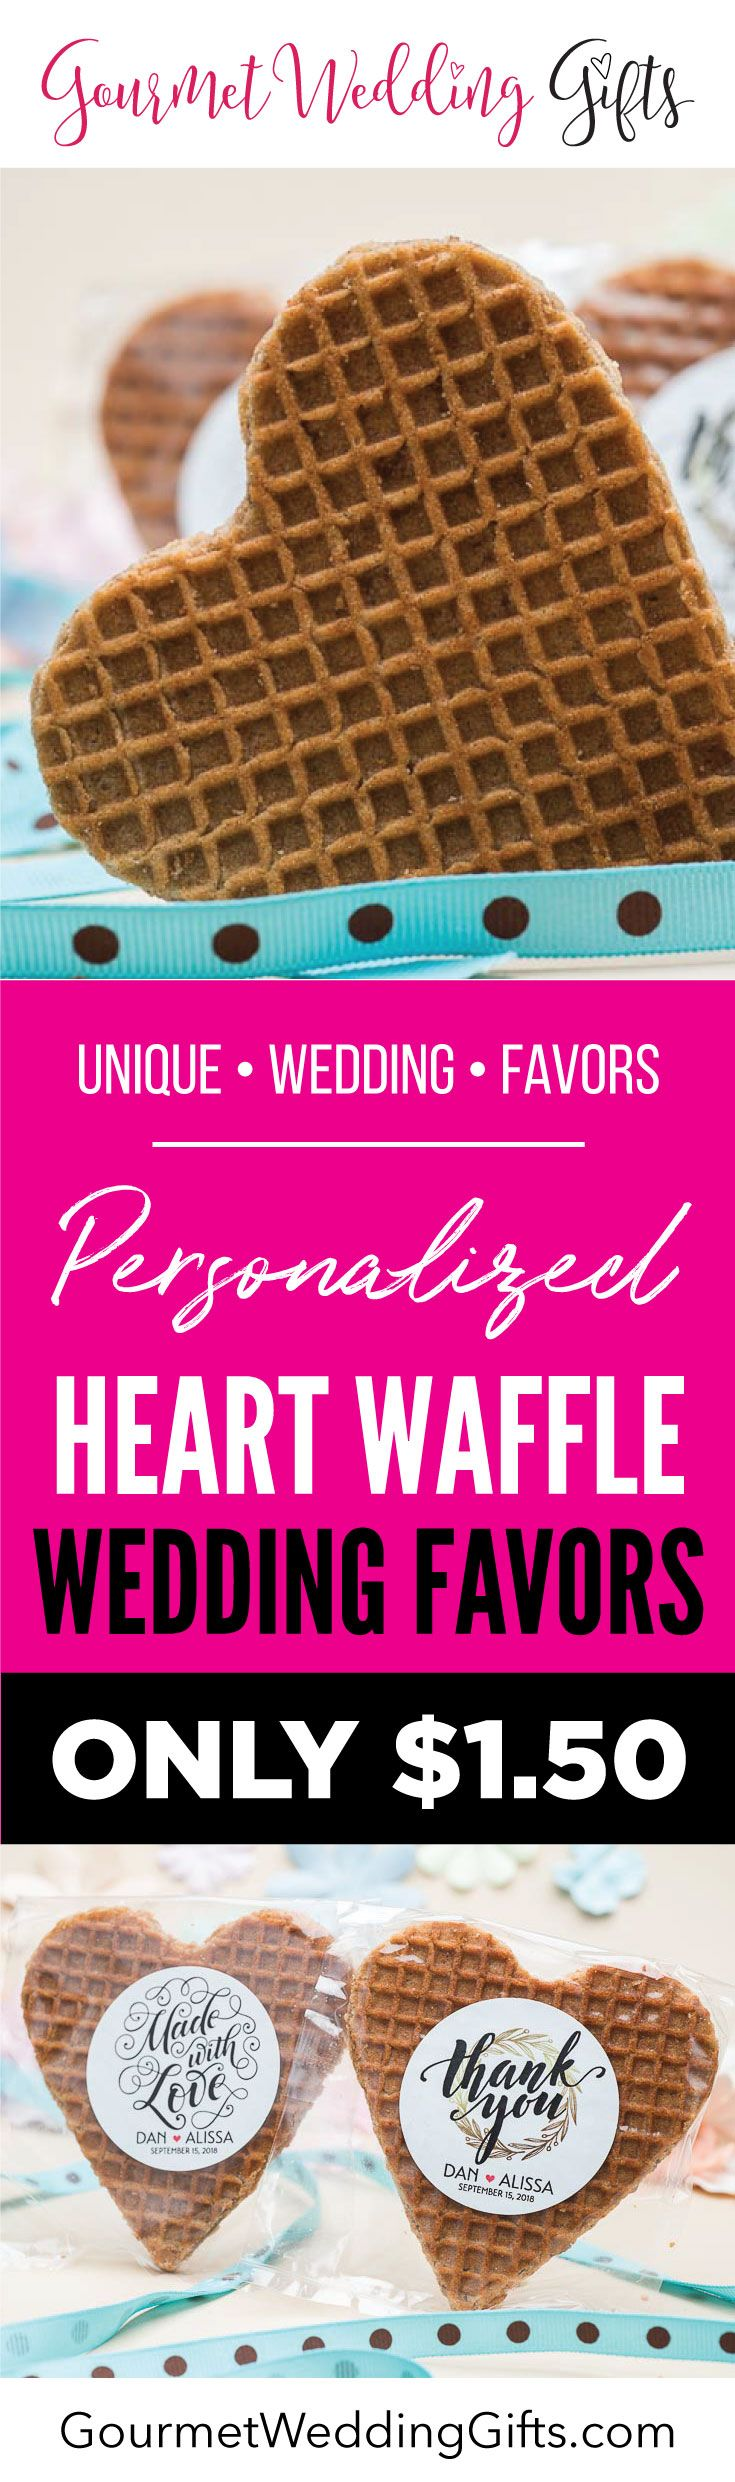 Personalized Heart Stroopwafel Wedding Favors | Unique Edible ...